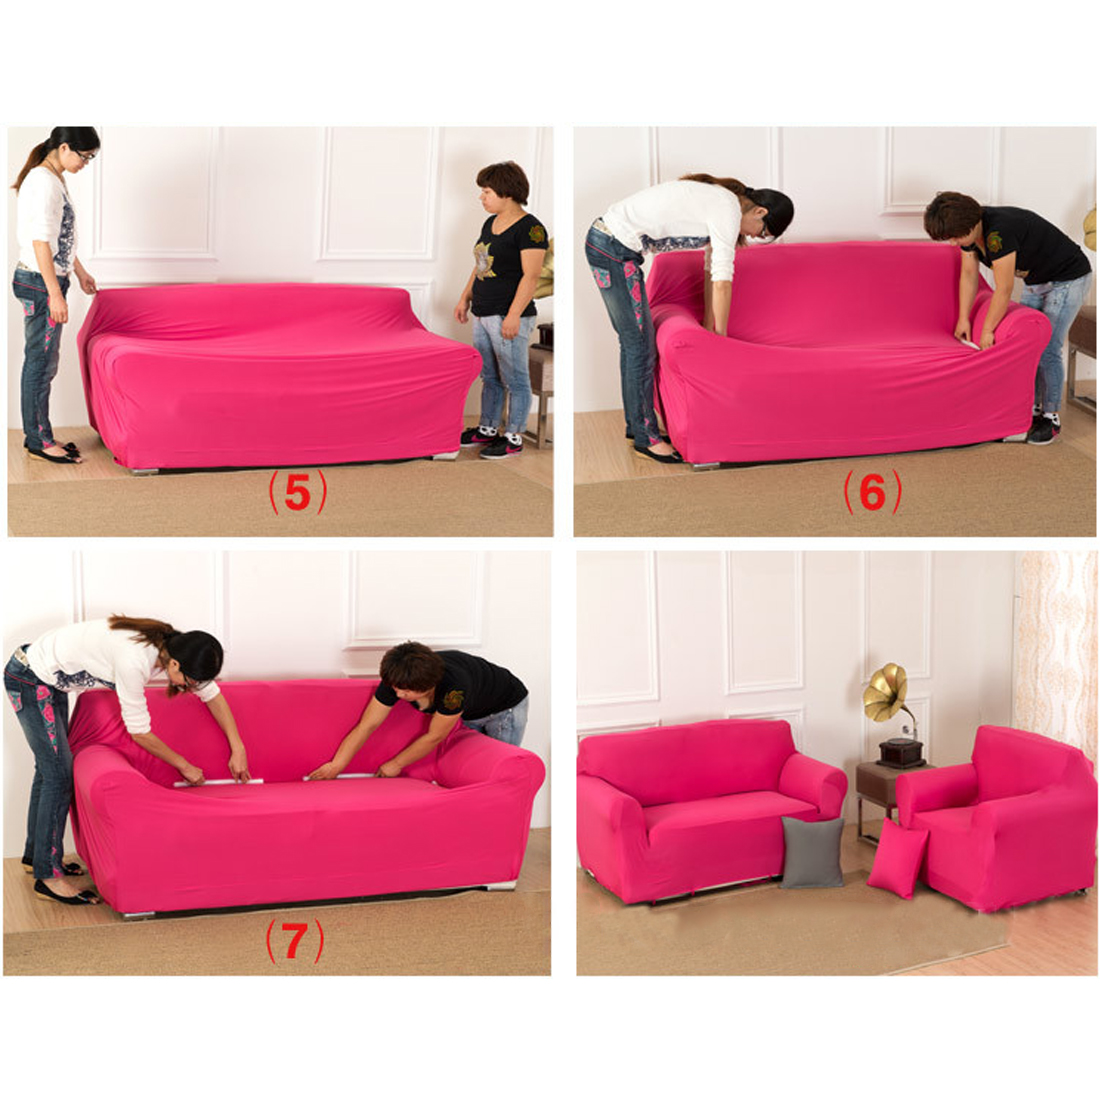 Sofa Set Covers For L Shape L Shaped Sofa Covers For 1 2 3 Seater Couch Cover